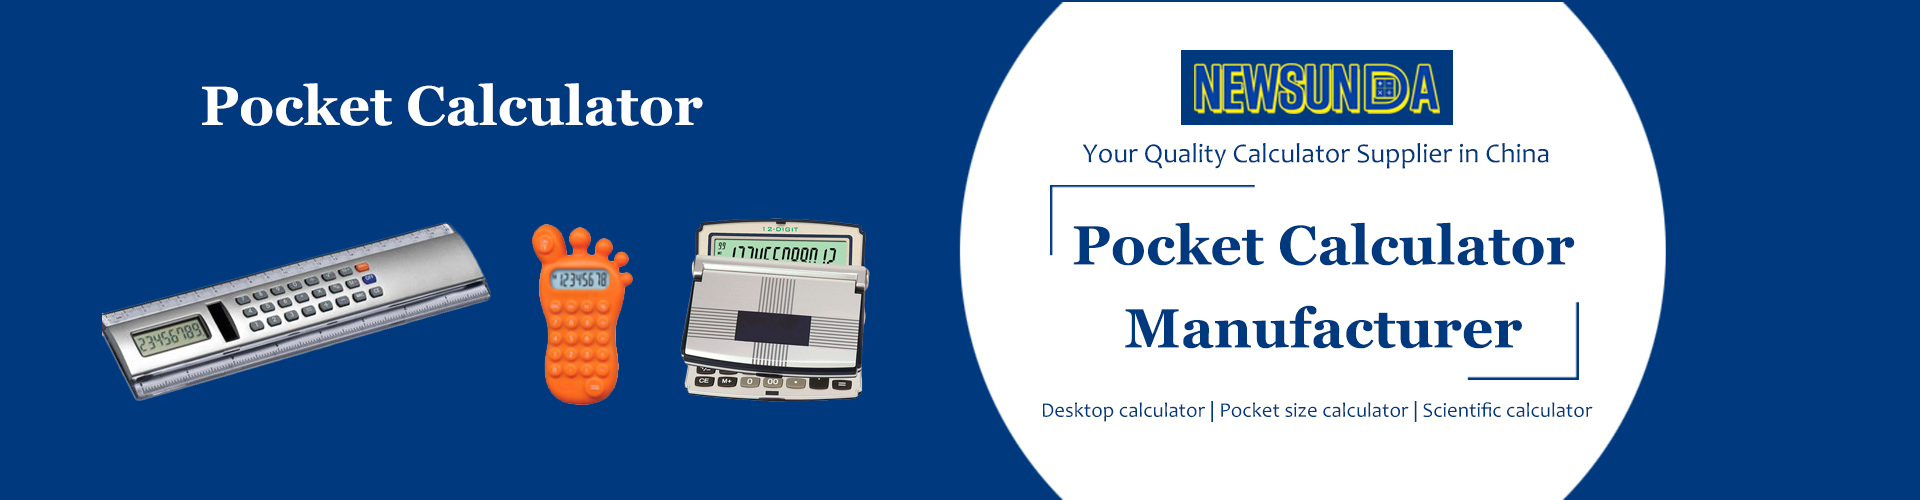 Pocket-calculator-Manufacturer-Banner